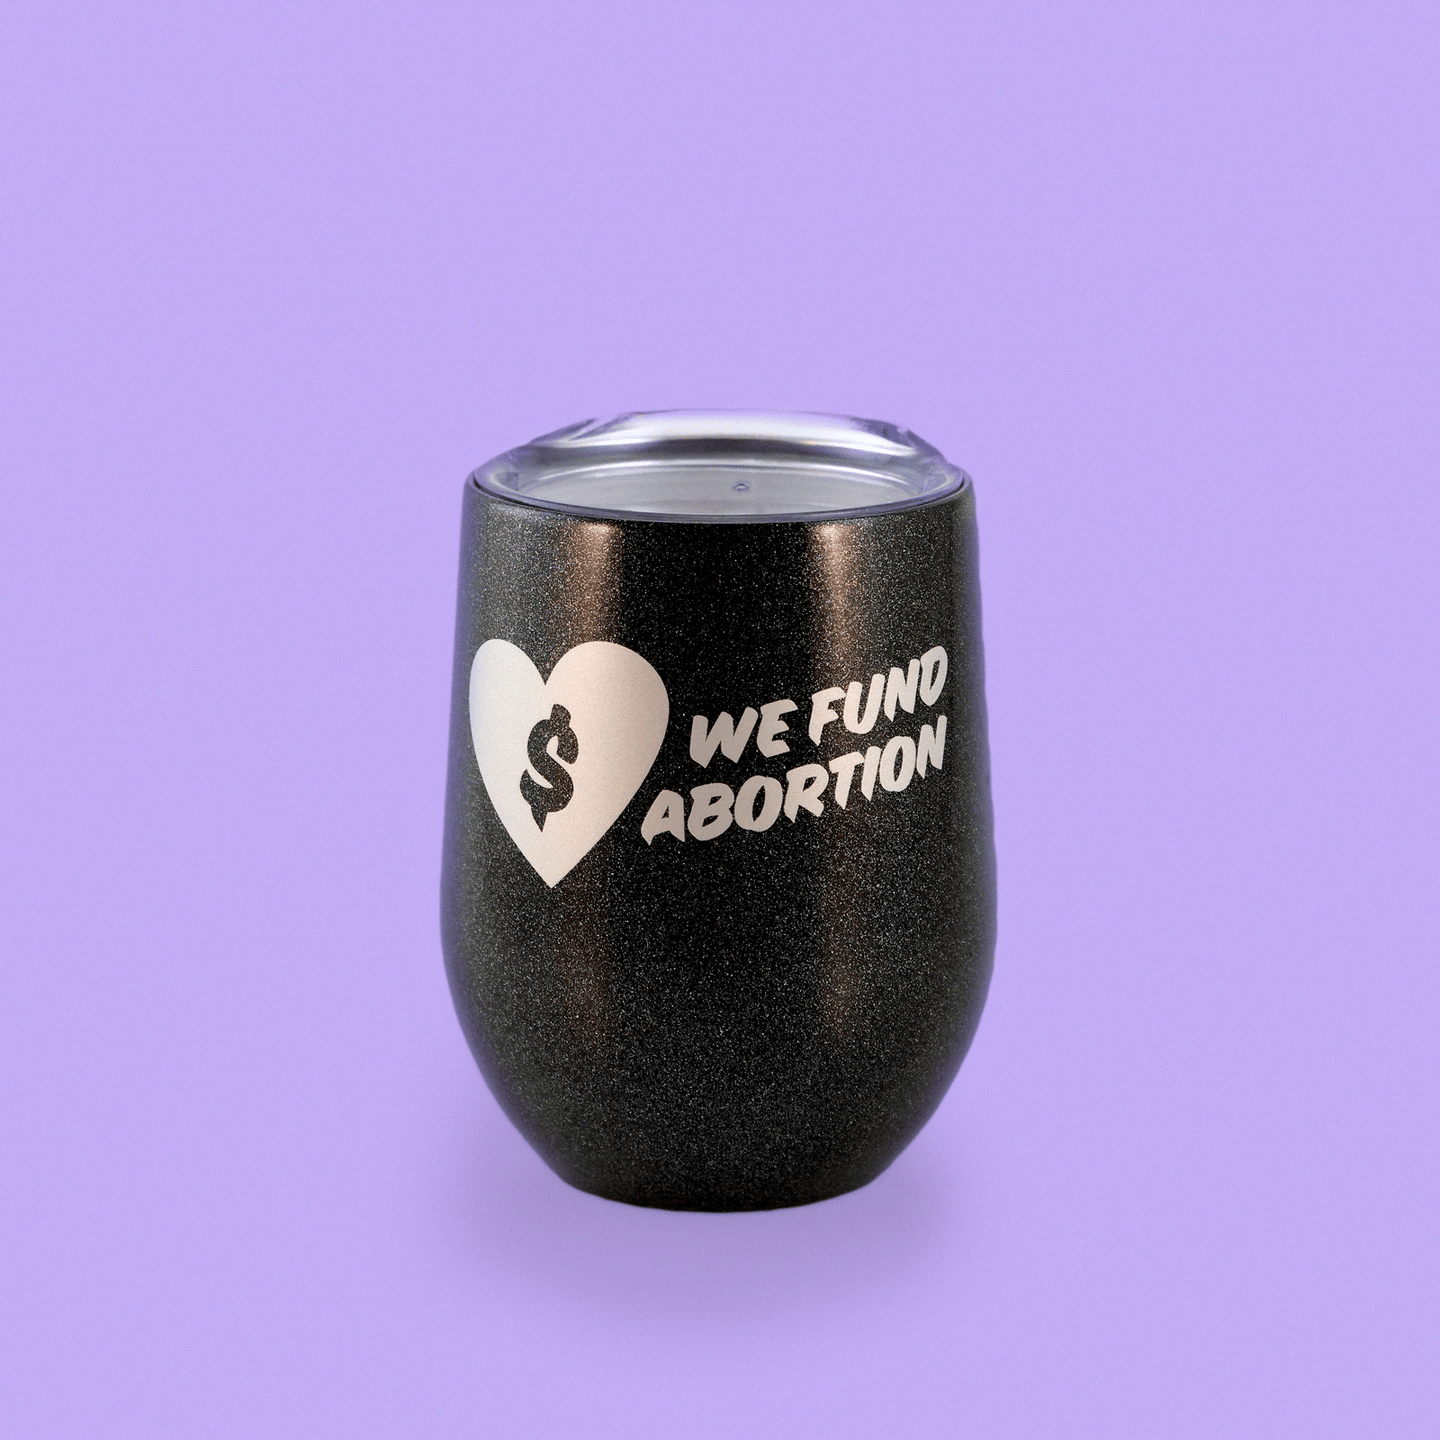 We Fund Abortion insulated tumbler